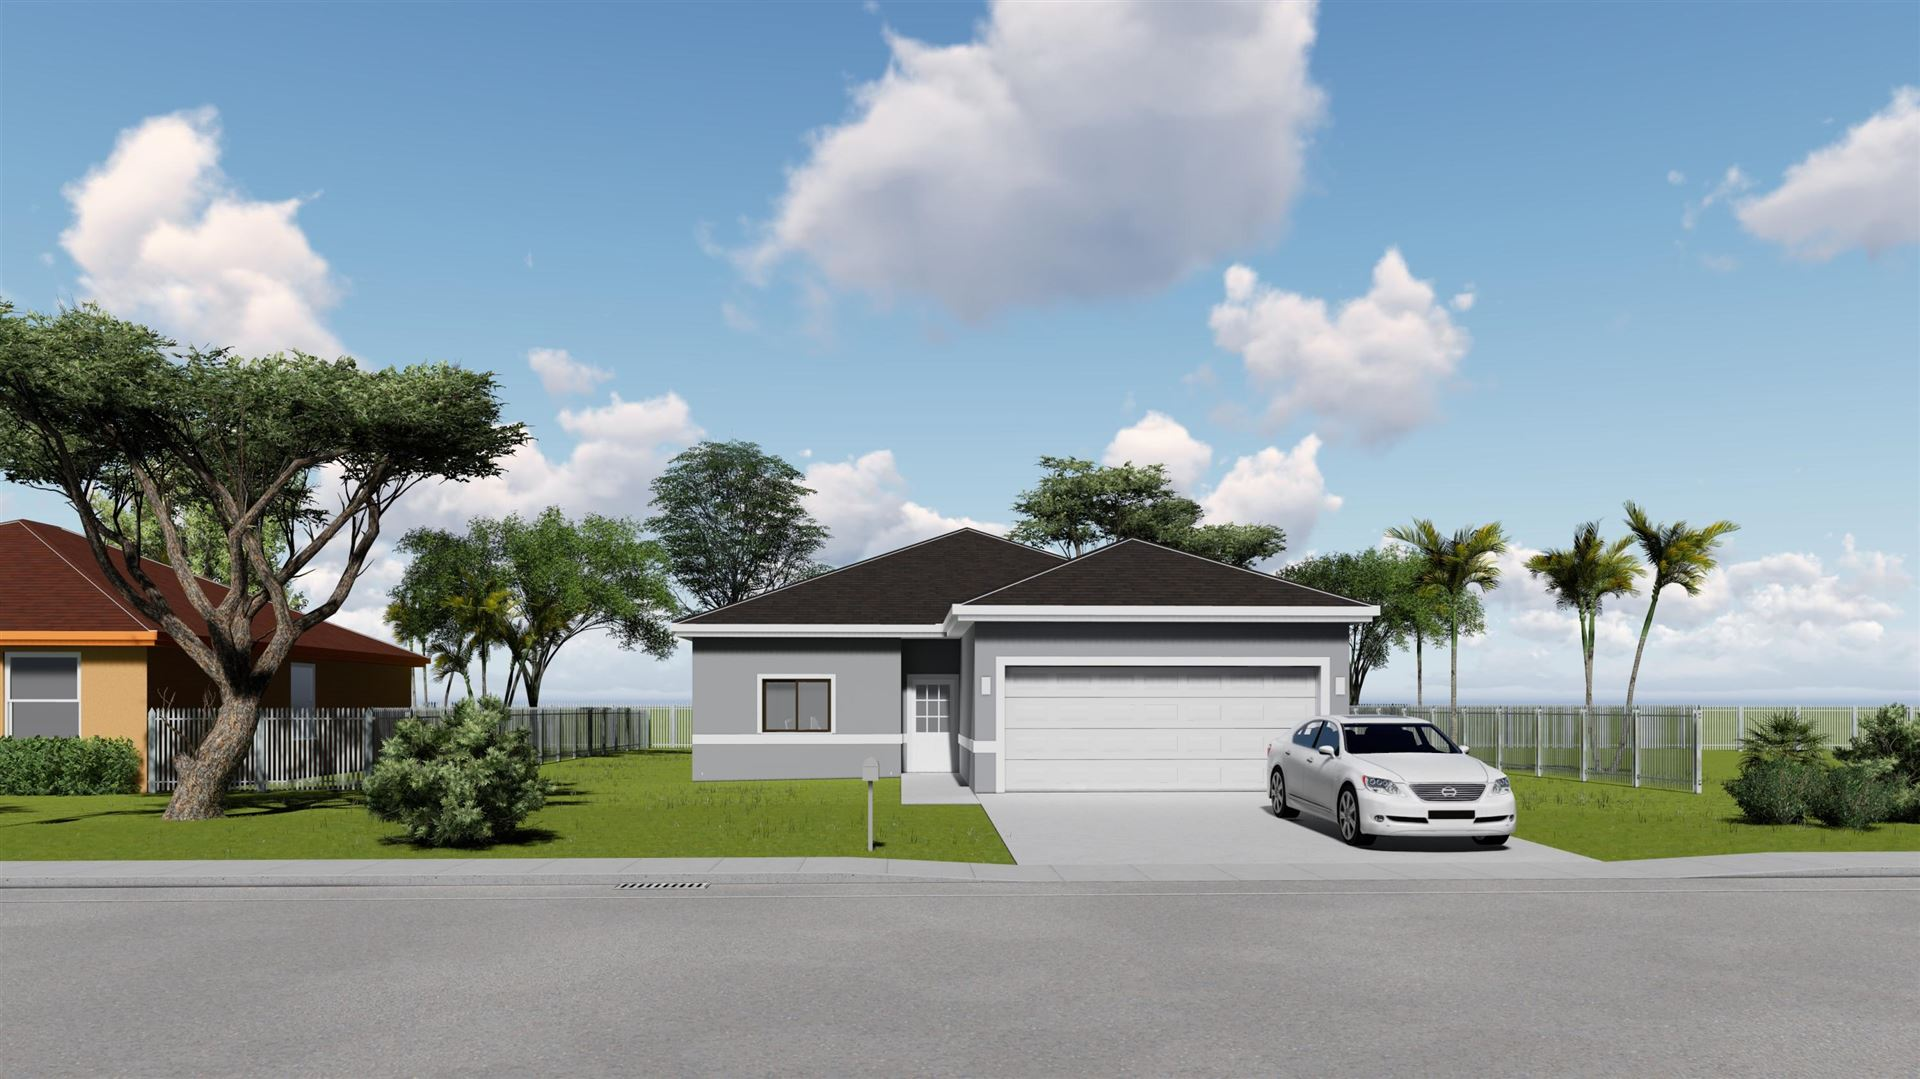 2864 NW 9th Street, Fort Lauderdale, FL 33311 - #: RX-10603822